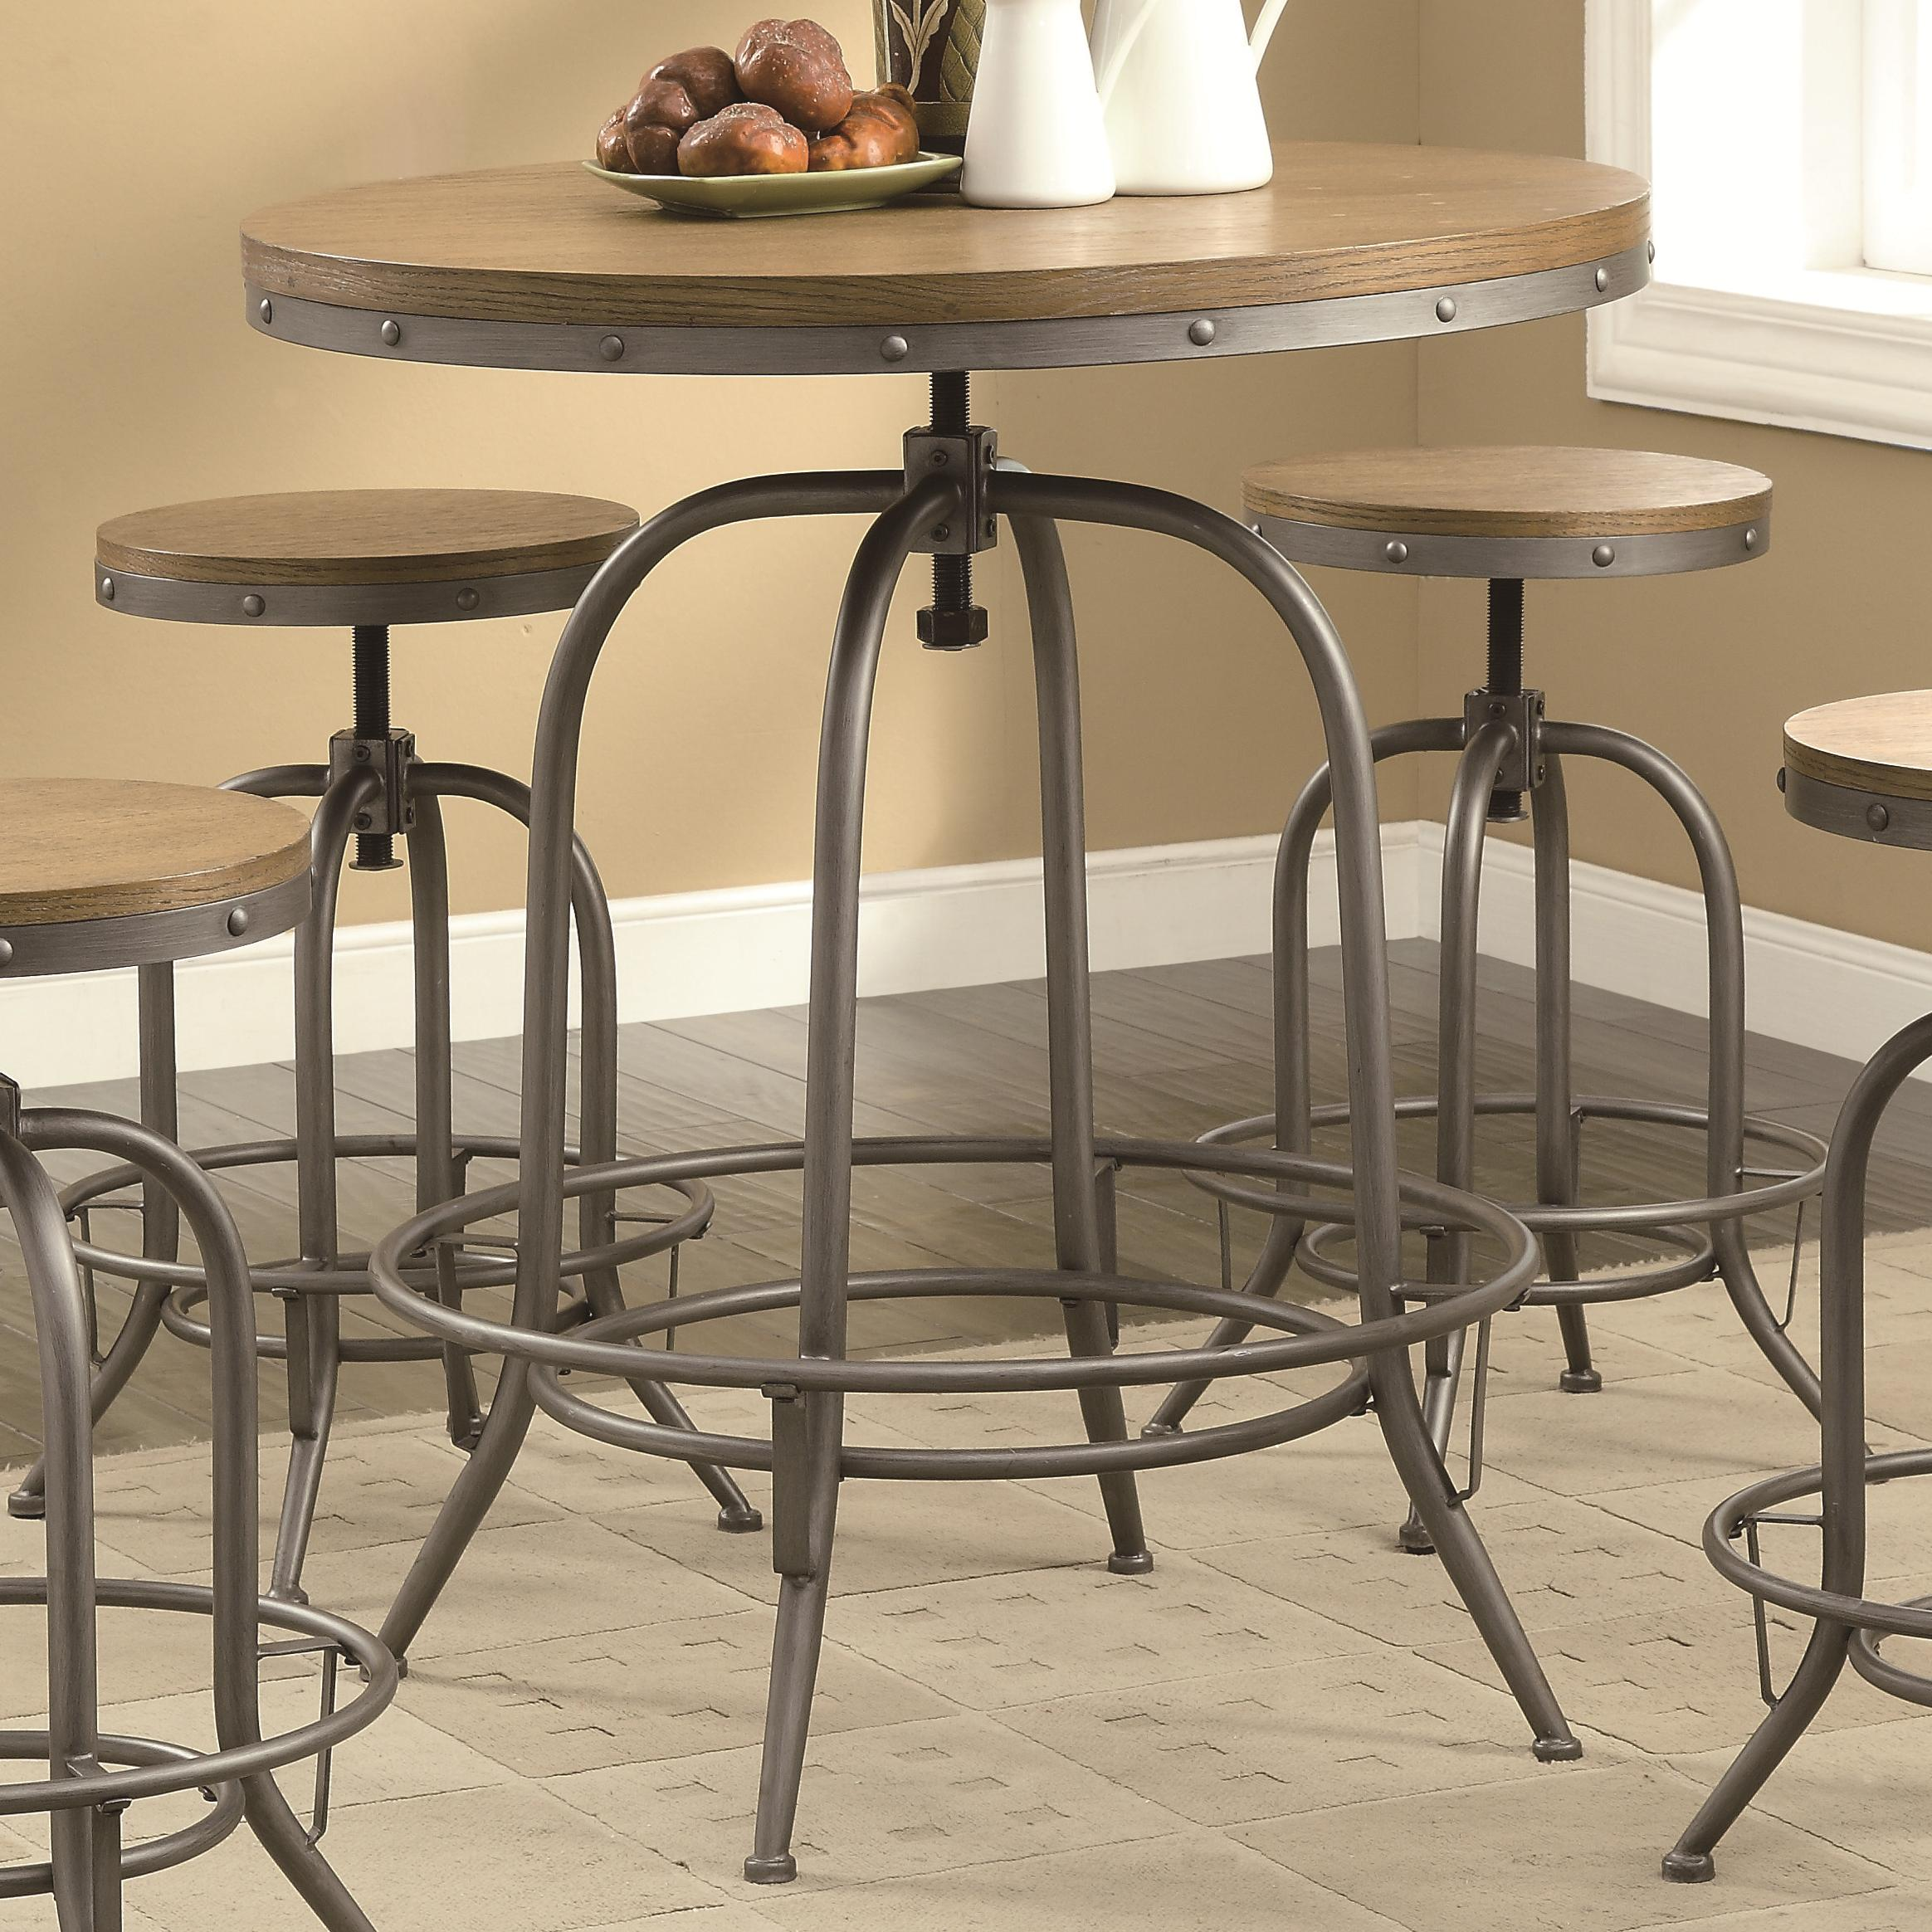 Coaster Bar Units and Bar Tables Adjustable Bar Table - Item Number: 122097